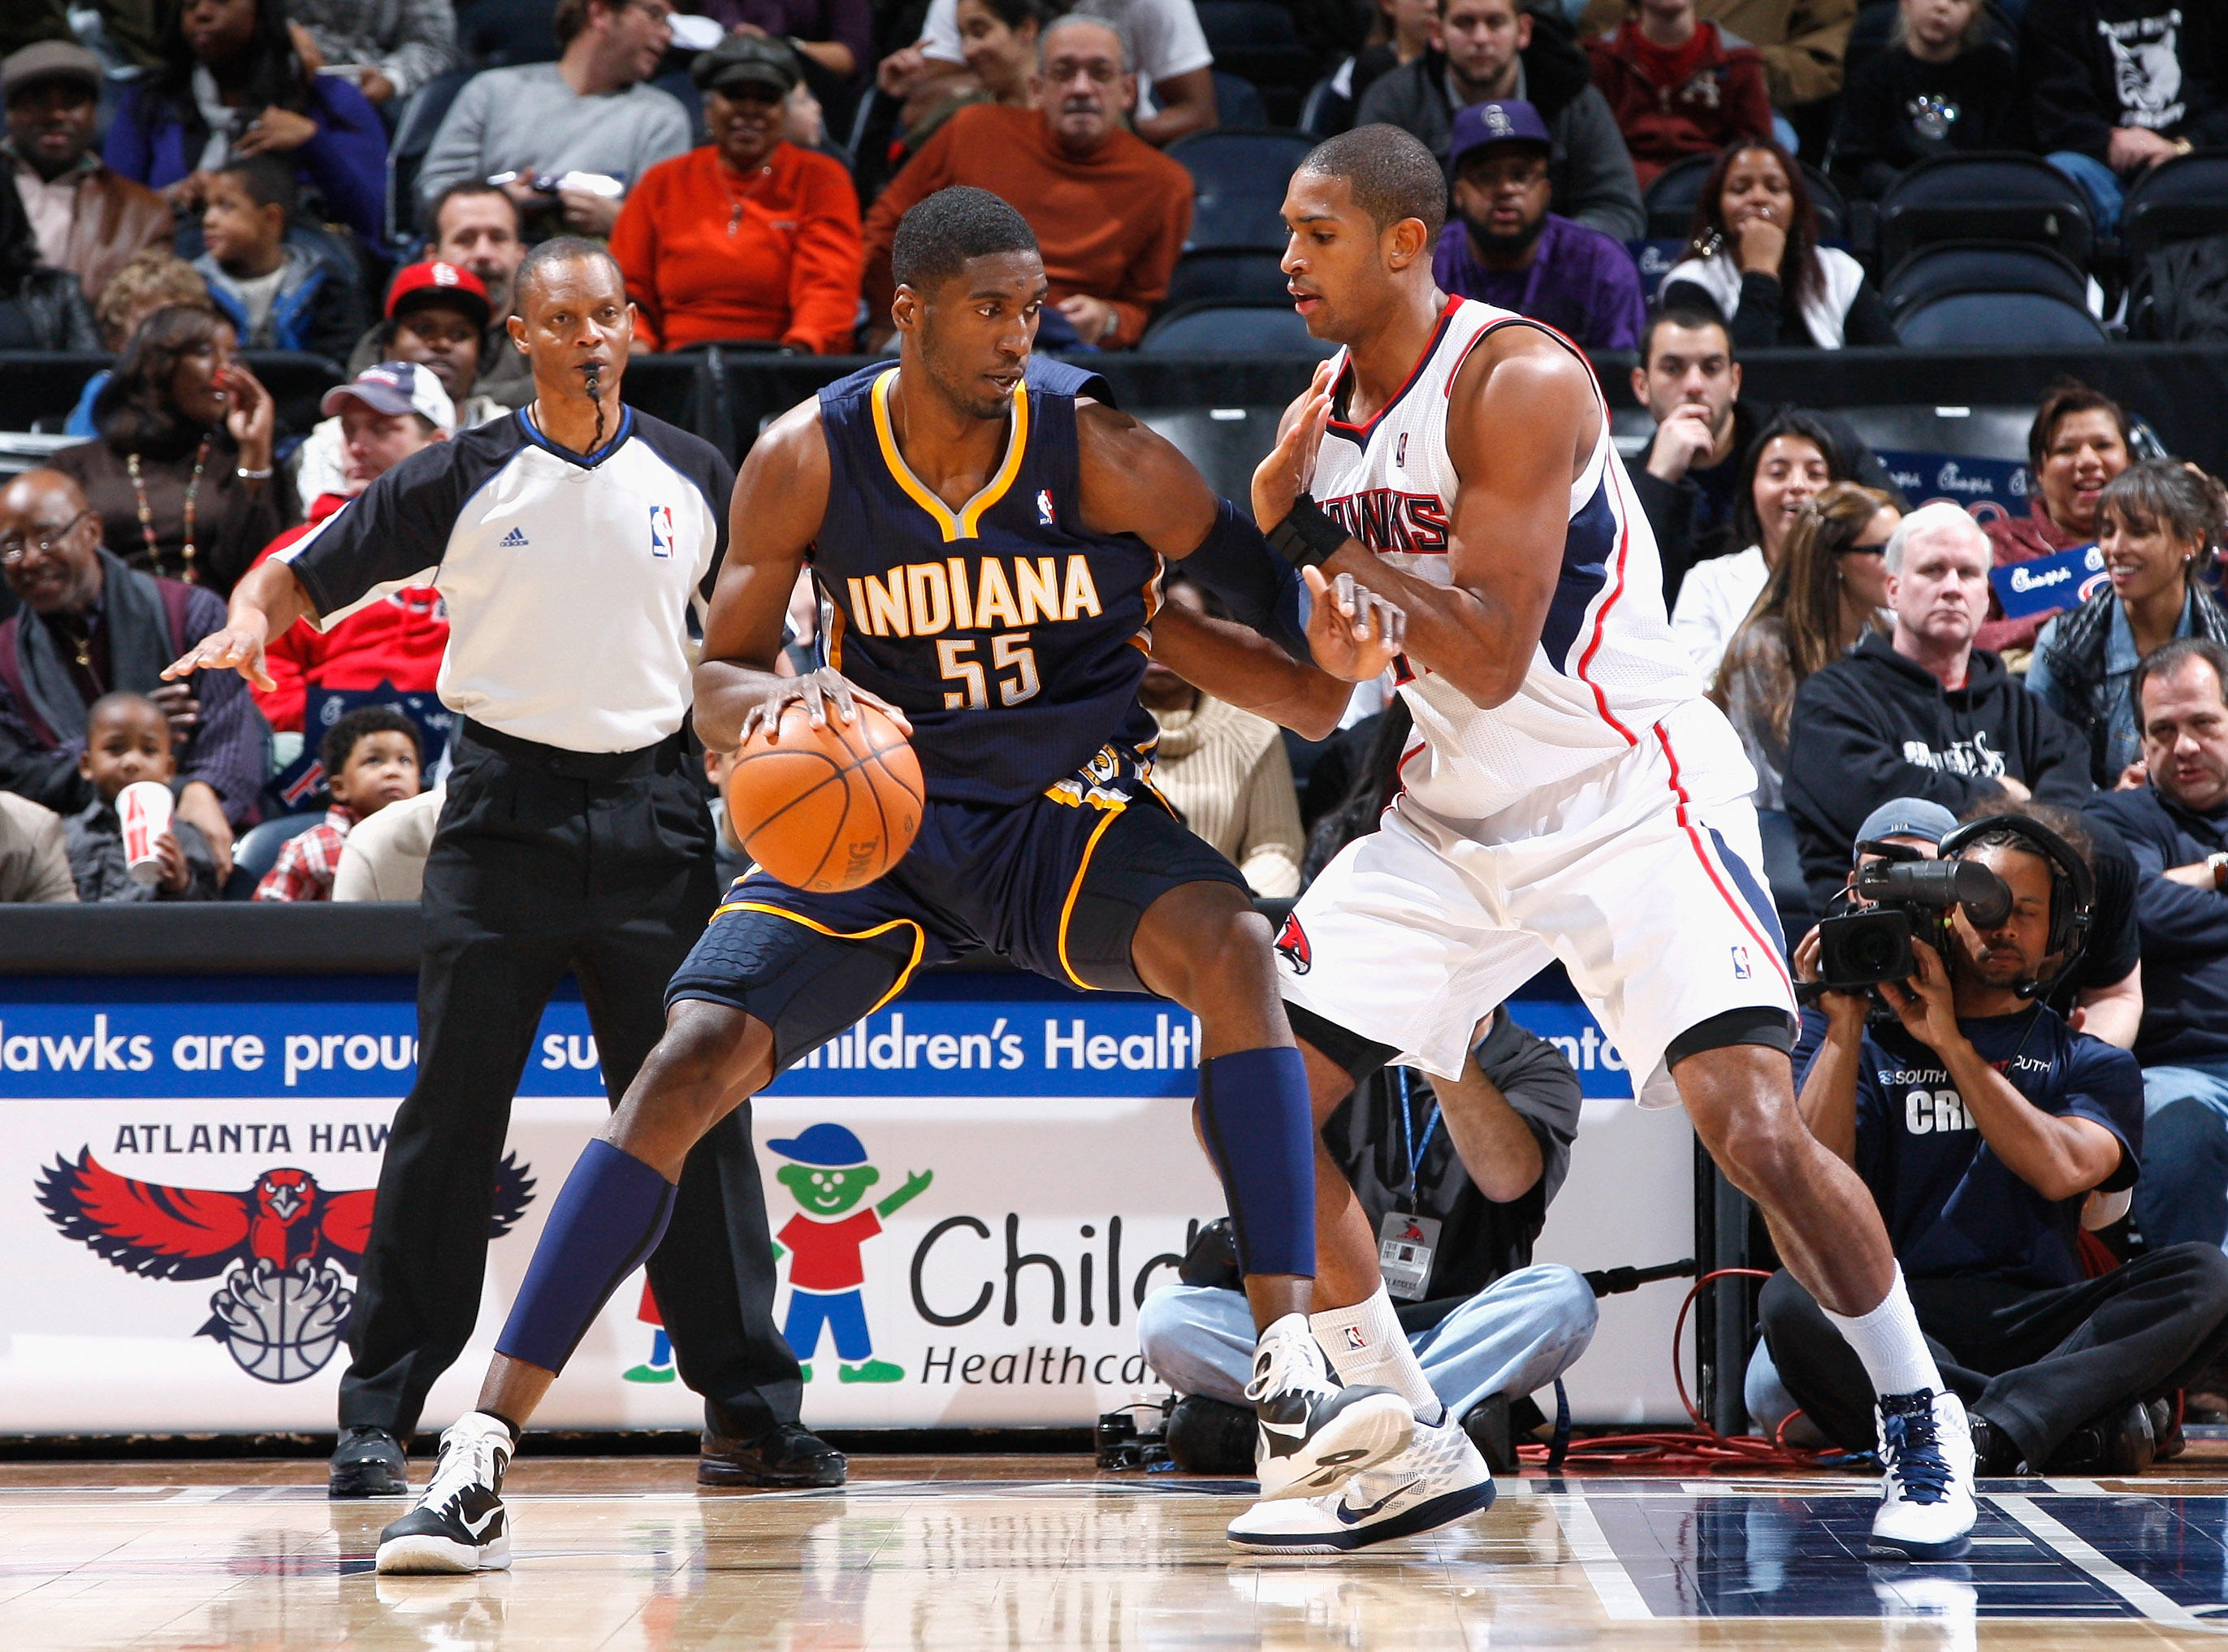 ATLANTA, GA - DECEMBER 11:  Roy Hibbert #55 of the Indiana Pacers against Al Horford #15 of the Atlanta Hawks at Philips Arena on December 11, 2010 in Atlanta, Georgia.  NOTE TO USER: User expressly acknowledges and agrees that, by downloading and/or usin